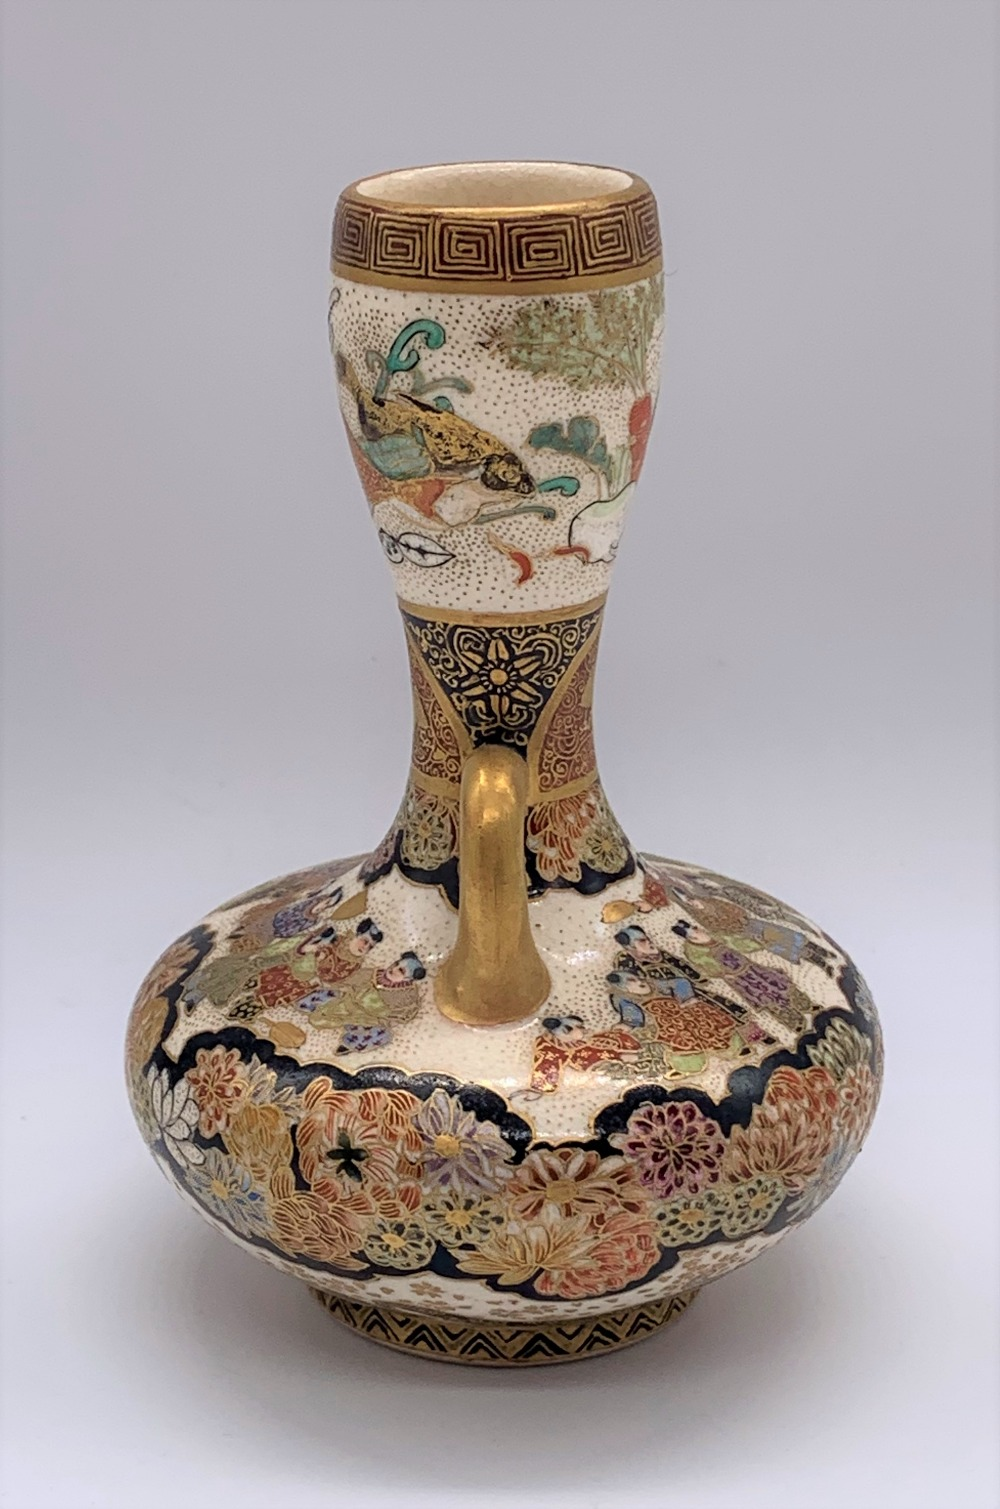 A Japanese Meiji period Satsuma twin handled vase of small proportions decorated with figures and - Image 4 of 7